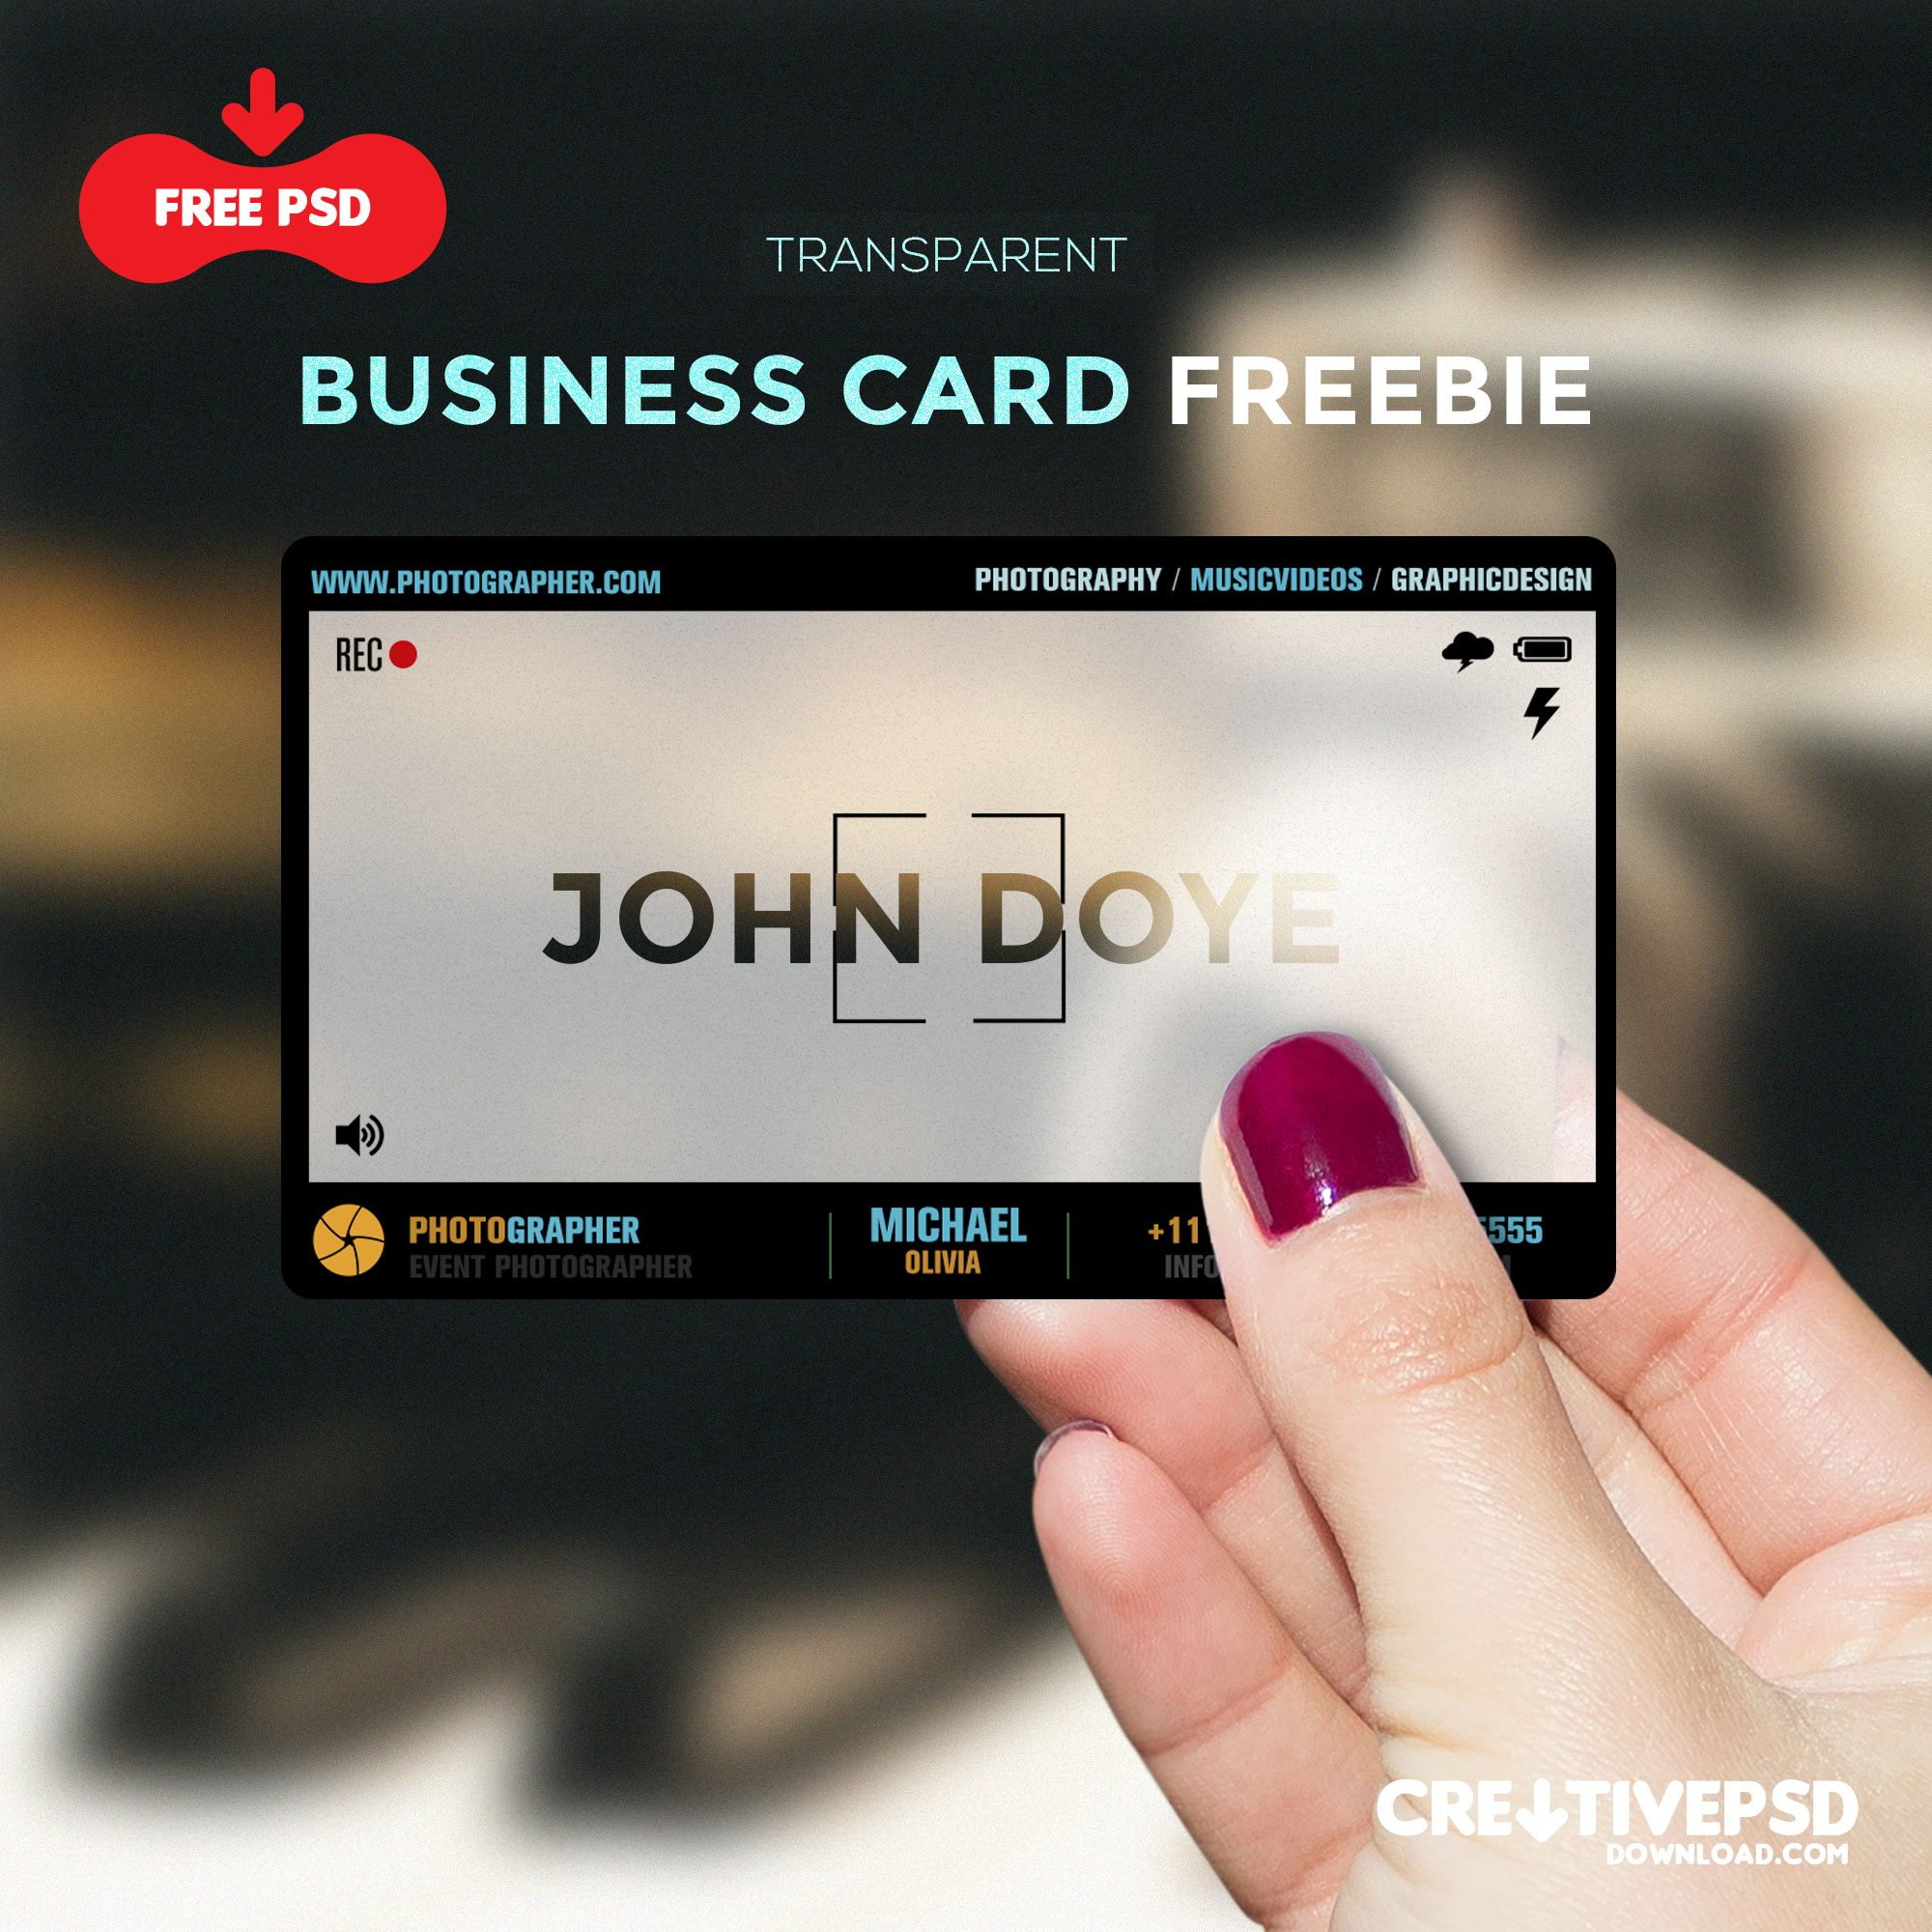 Download Transparent Visiting Card Freebie PSD, business card psd,creative business card,creative psd,creative psd download,download free psd,download transparent visiting card freebie psd,free psd,free psd download,free psds,new trend business card,psd download,psd freebies,transparent business card,transparent creative business card,visiting card psd